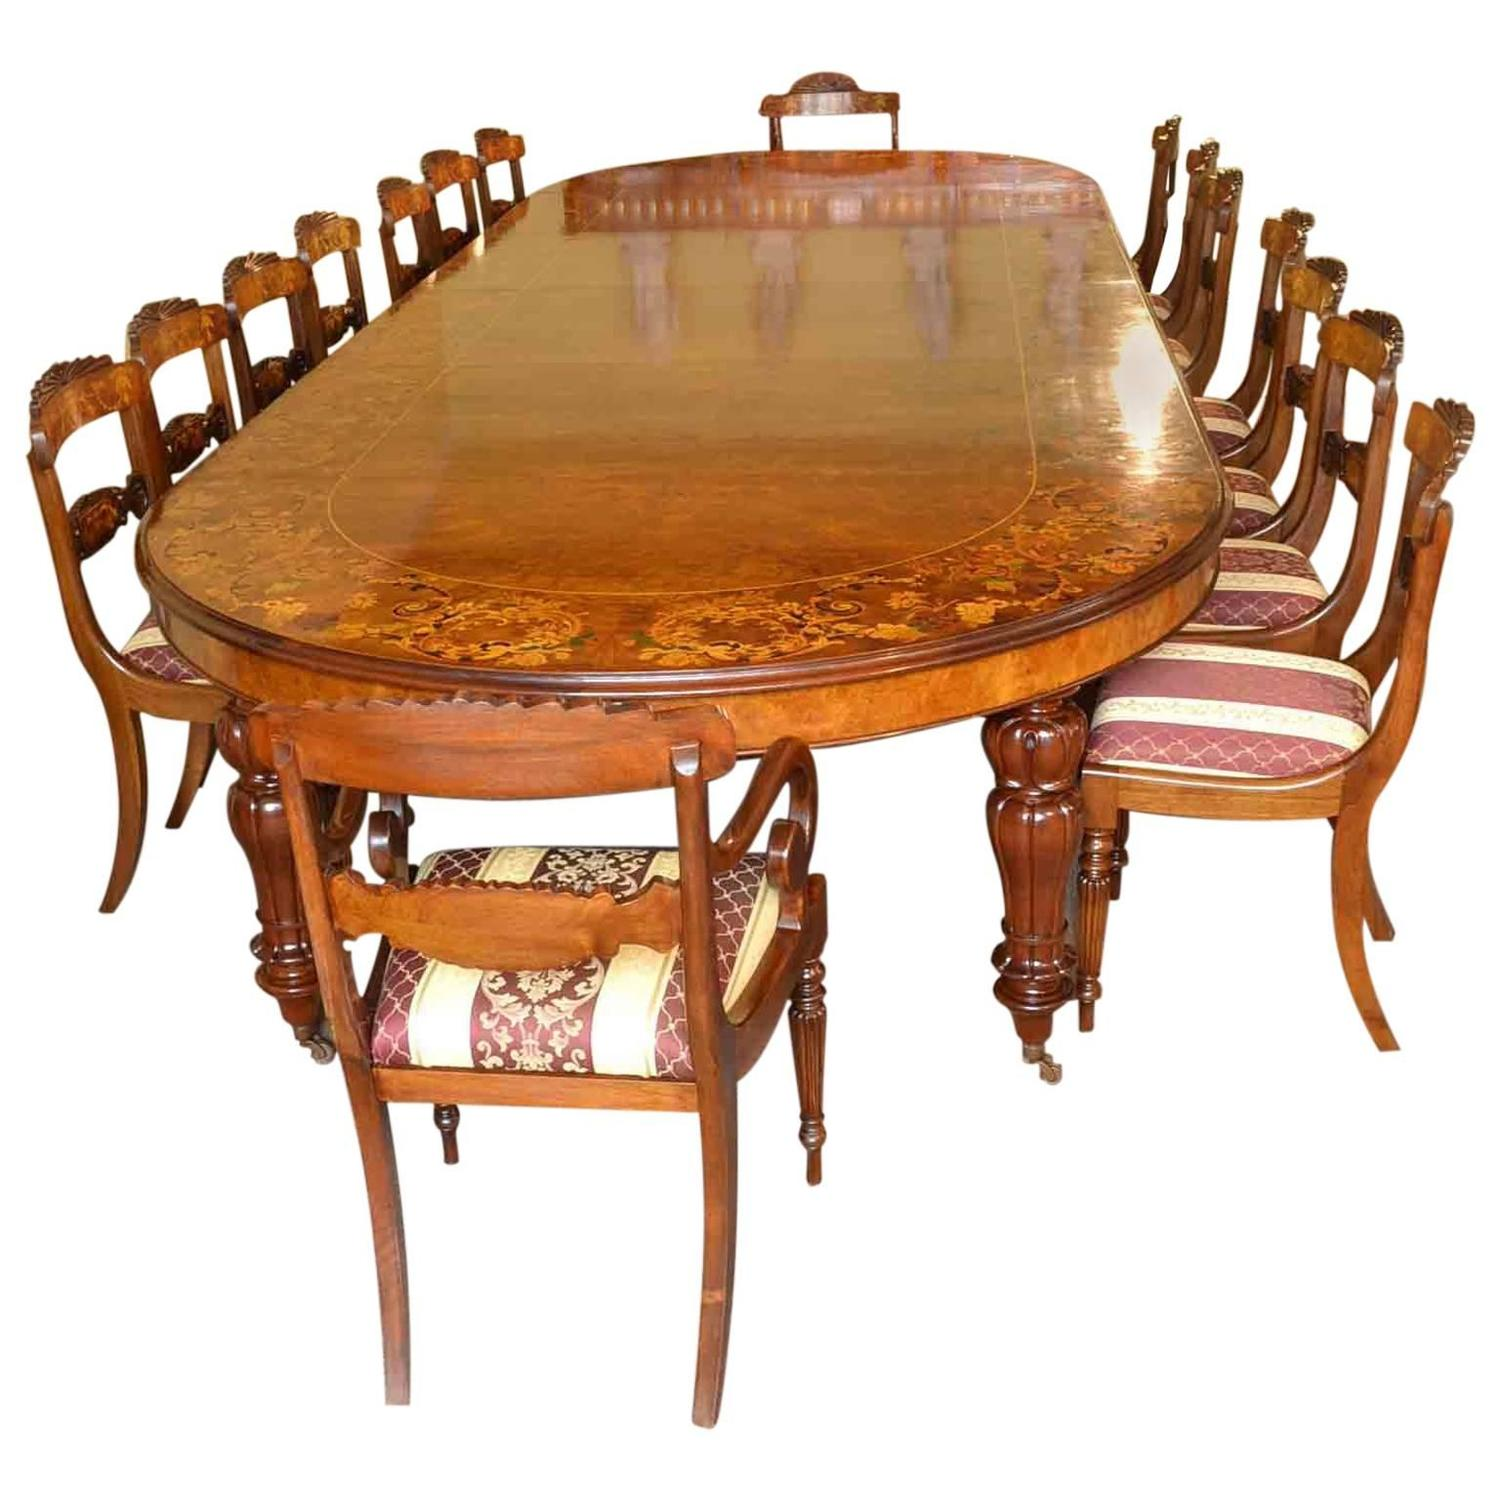 Tables Chairs For Sale: Huge Marquetry Dining Table, 16 Chairs, Extending, Walnut